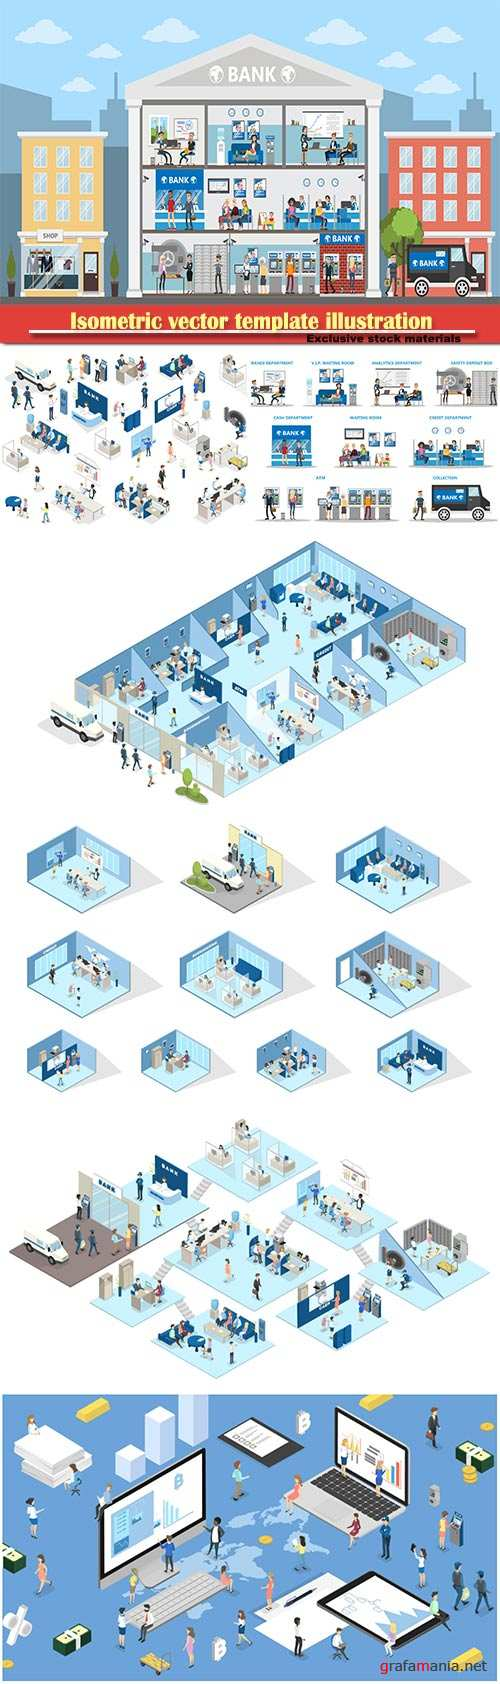 Isometric vector template business illustration # 45